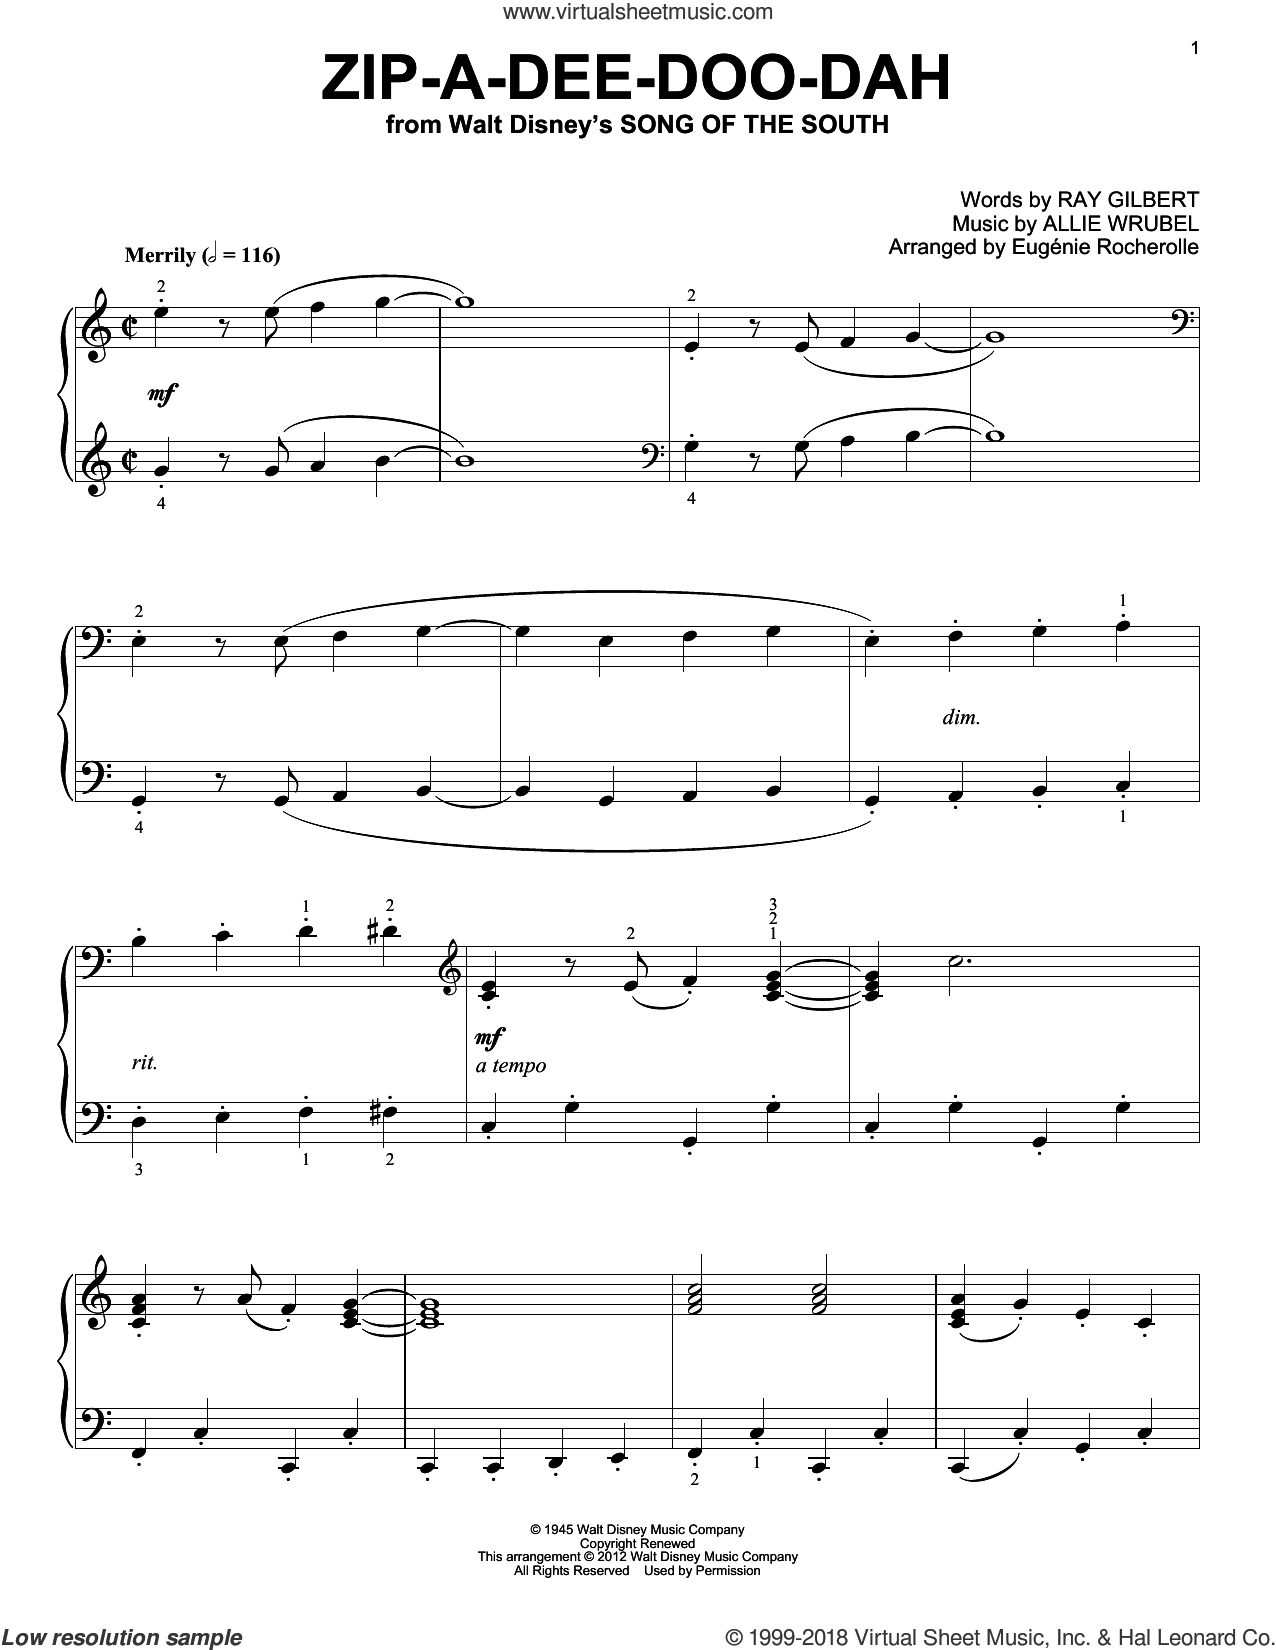 Zip-A-Dee-Doo-Dah sheet music for piano solo by Ray Gilbert, Eugenie Rocherolle and Allie Wrubel, intermediate skill level